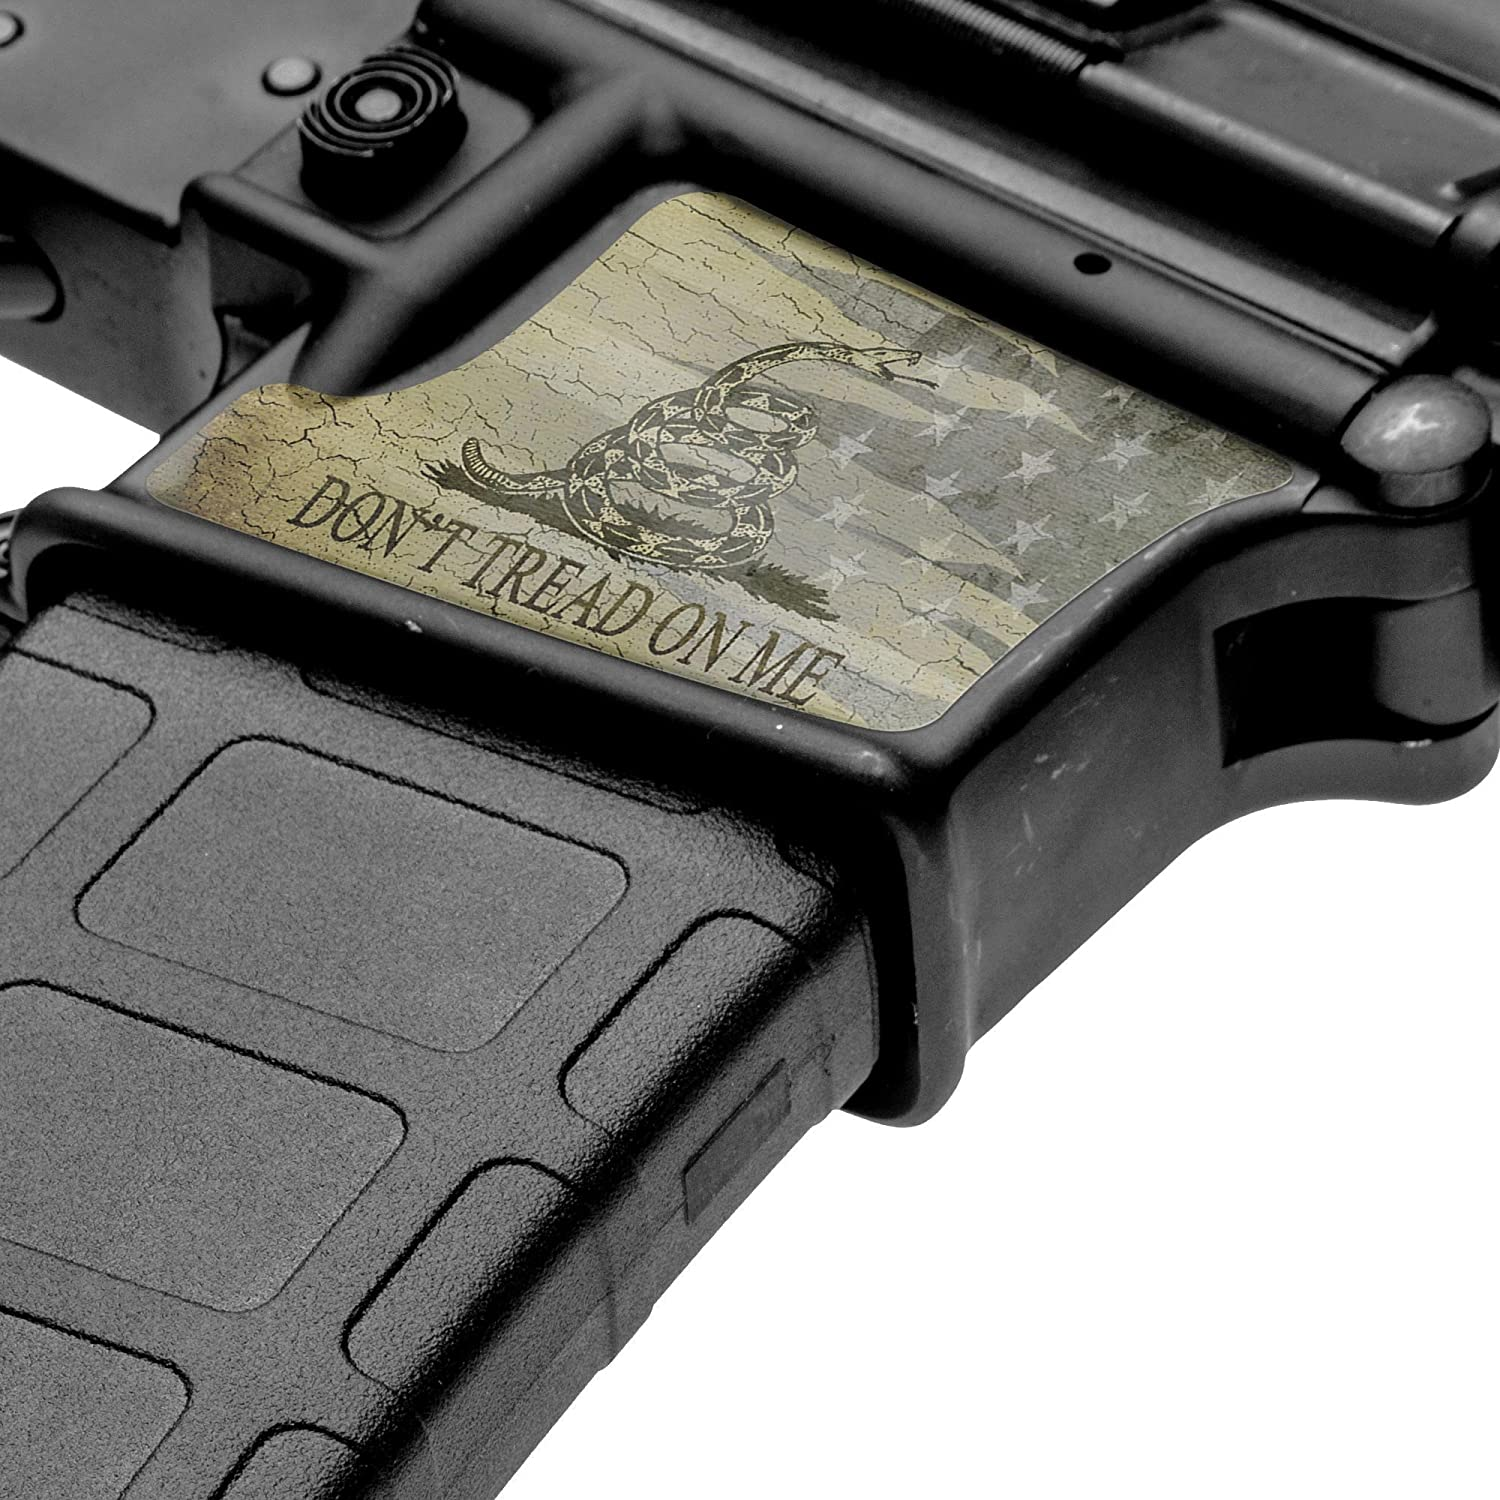 GunSkins Magwell Skin - Premium Vinyl Decal - Easy to Install and Fits AR-15 Lower Receivers - 100% Waterproof Non-Reflective Matte Finish - Made in USA